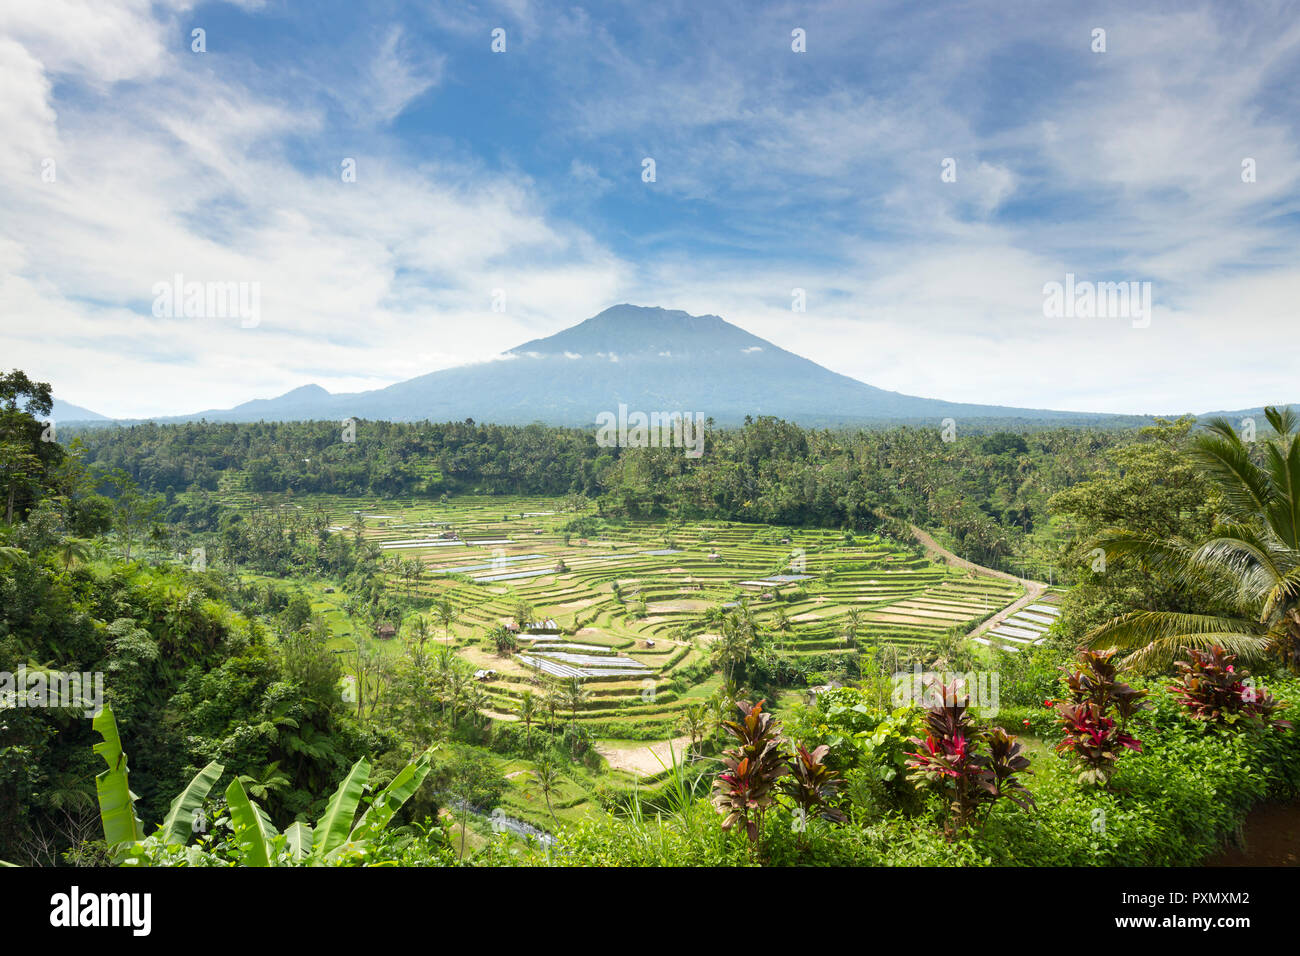 View of rice terraces and Gunung Agung volcano, Rendang, Bali, Indonesia - Stock Image